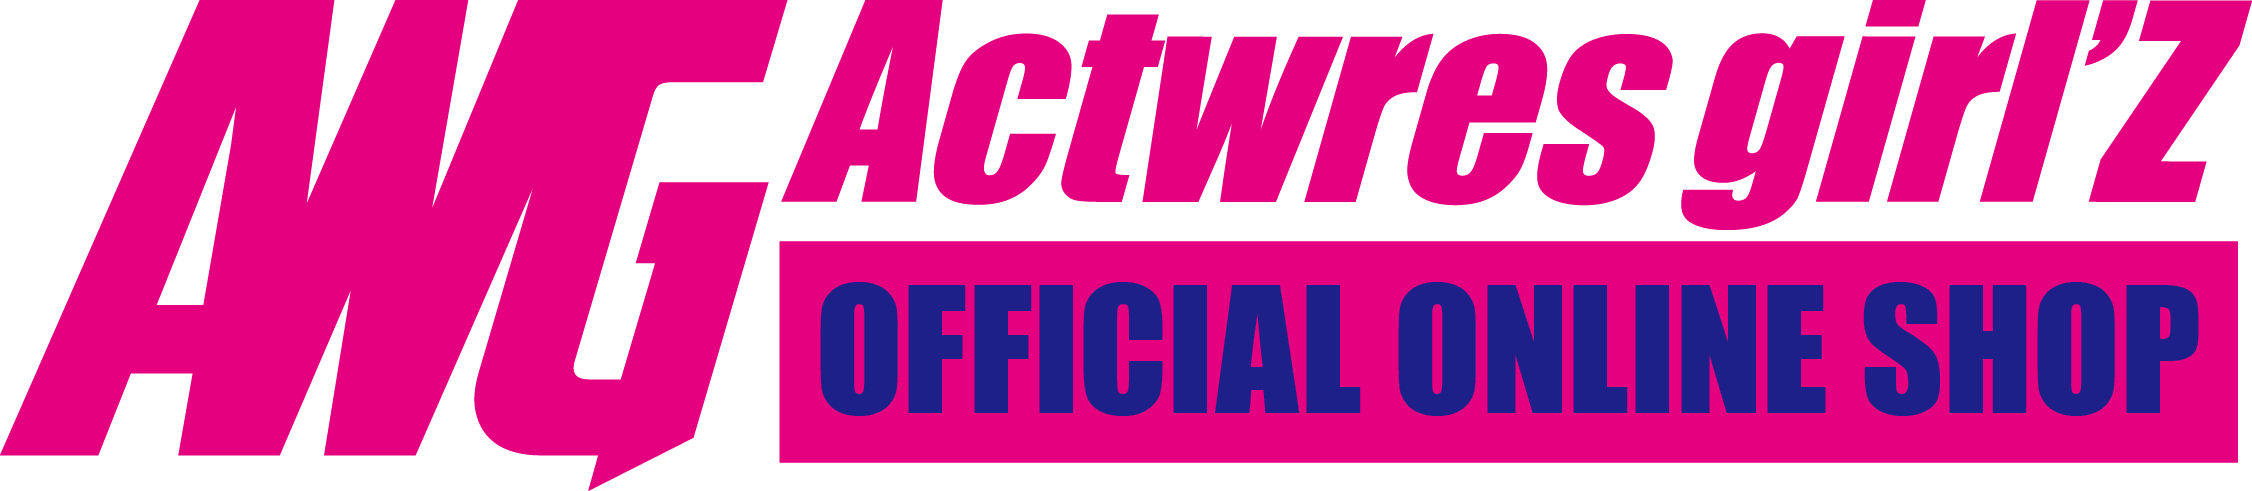 Actwres girl'Z OFFICIAL ONLINE SHOP